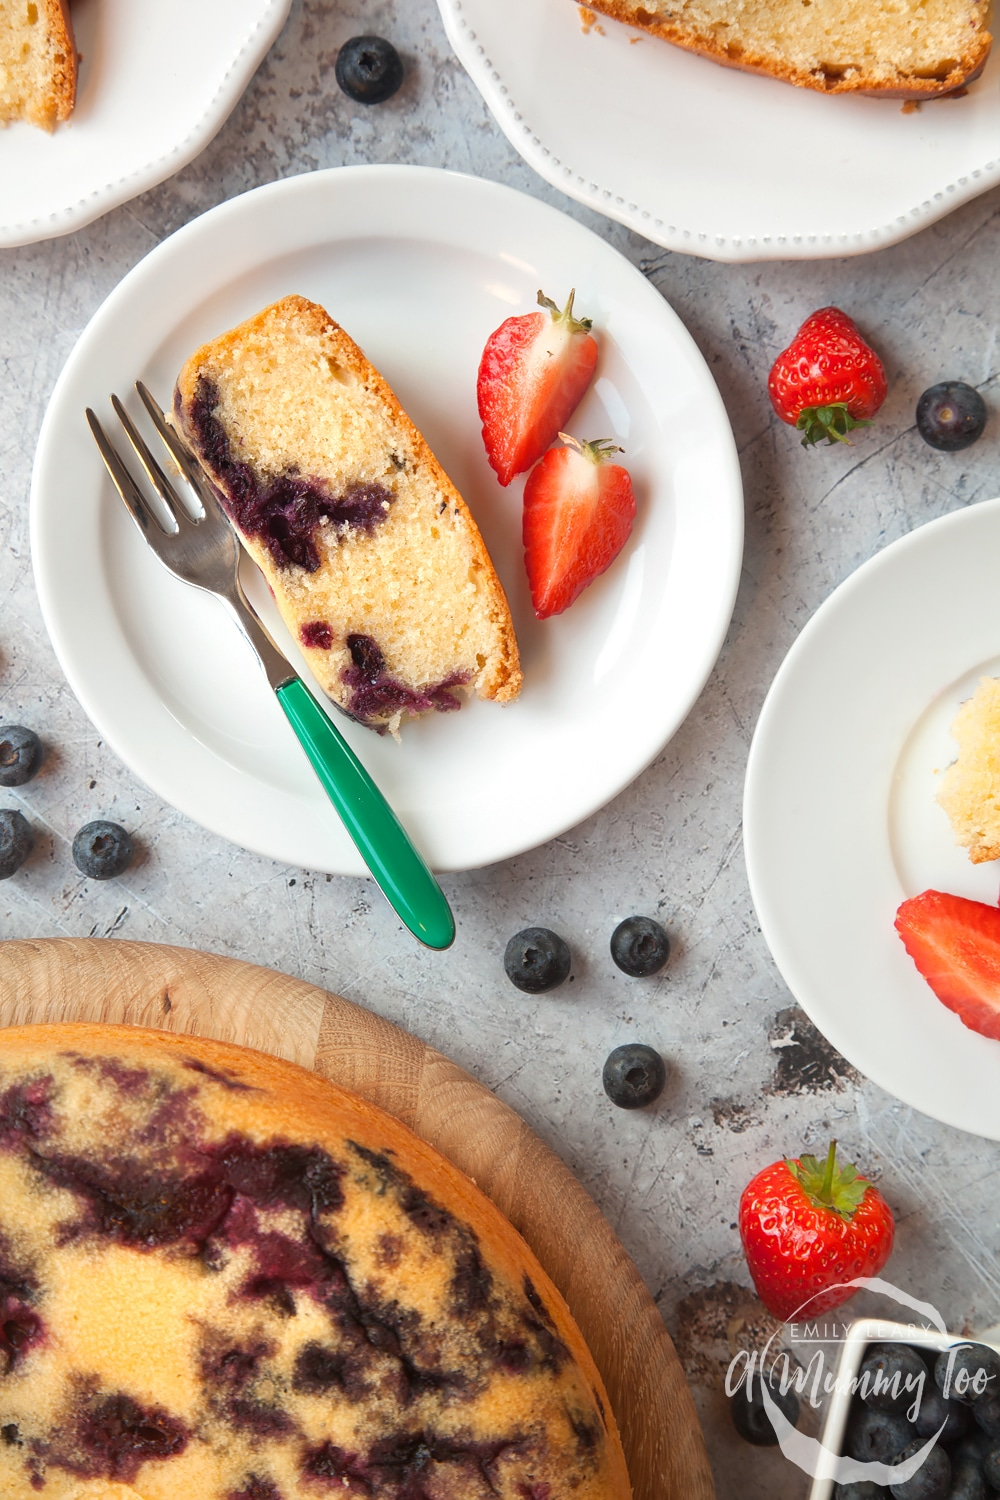 Blueberry cake cut into slices and served with sliced strawberries